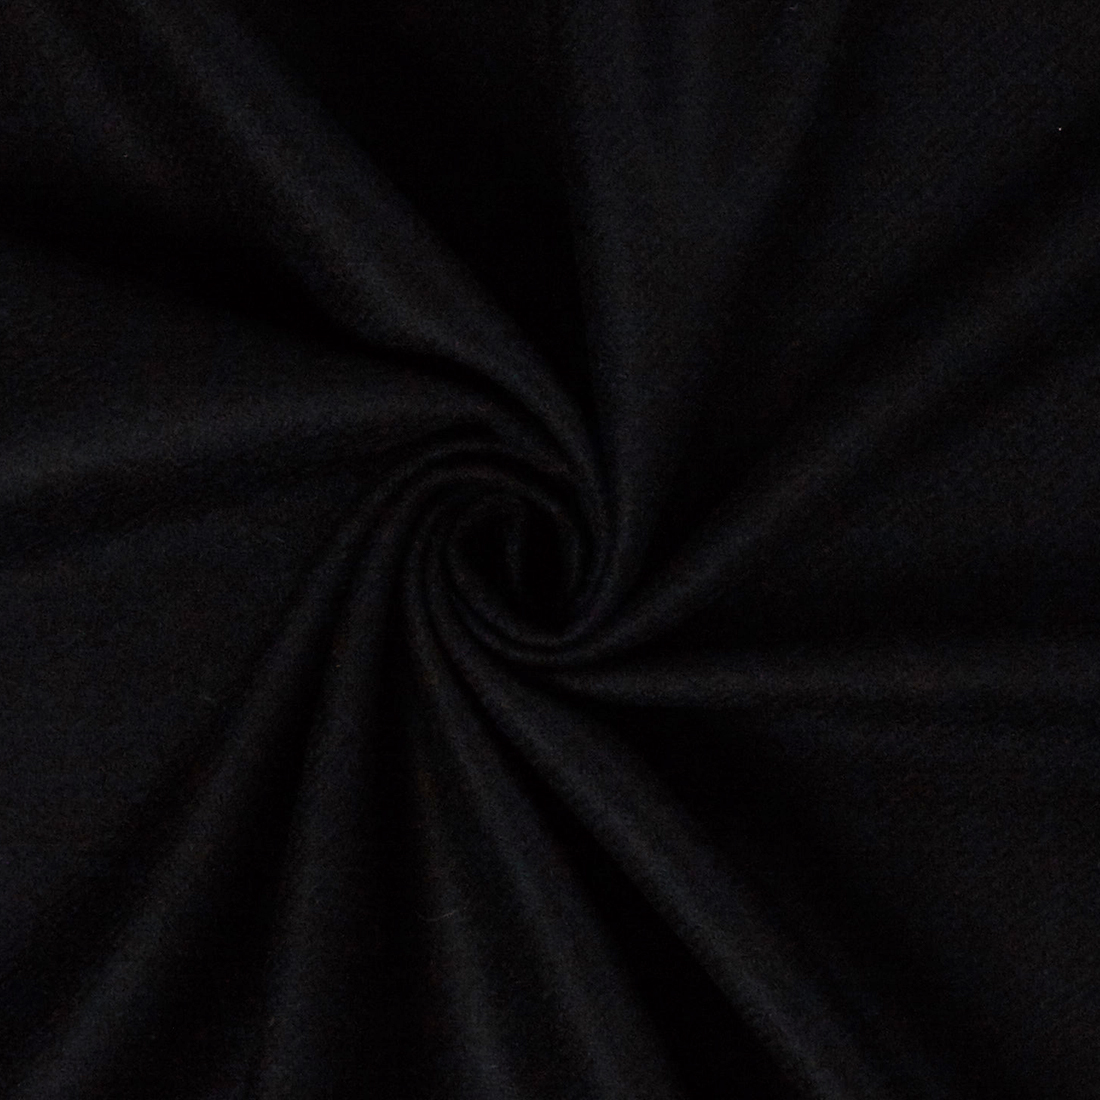 Heavy Wool Suiting Black Dress Fabric